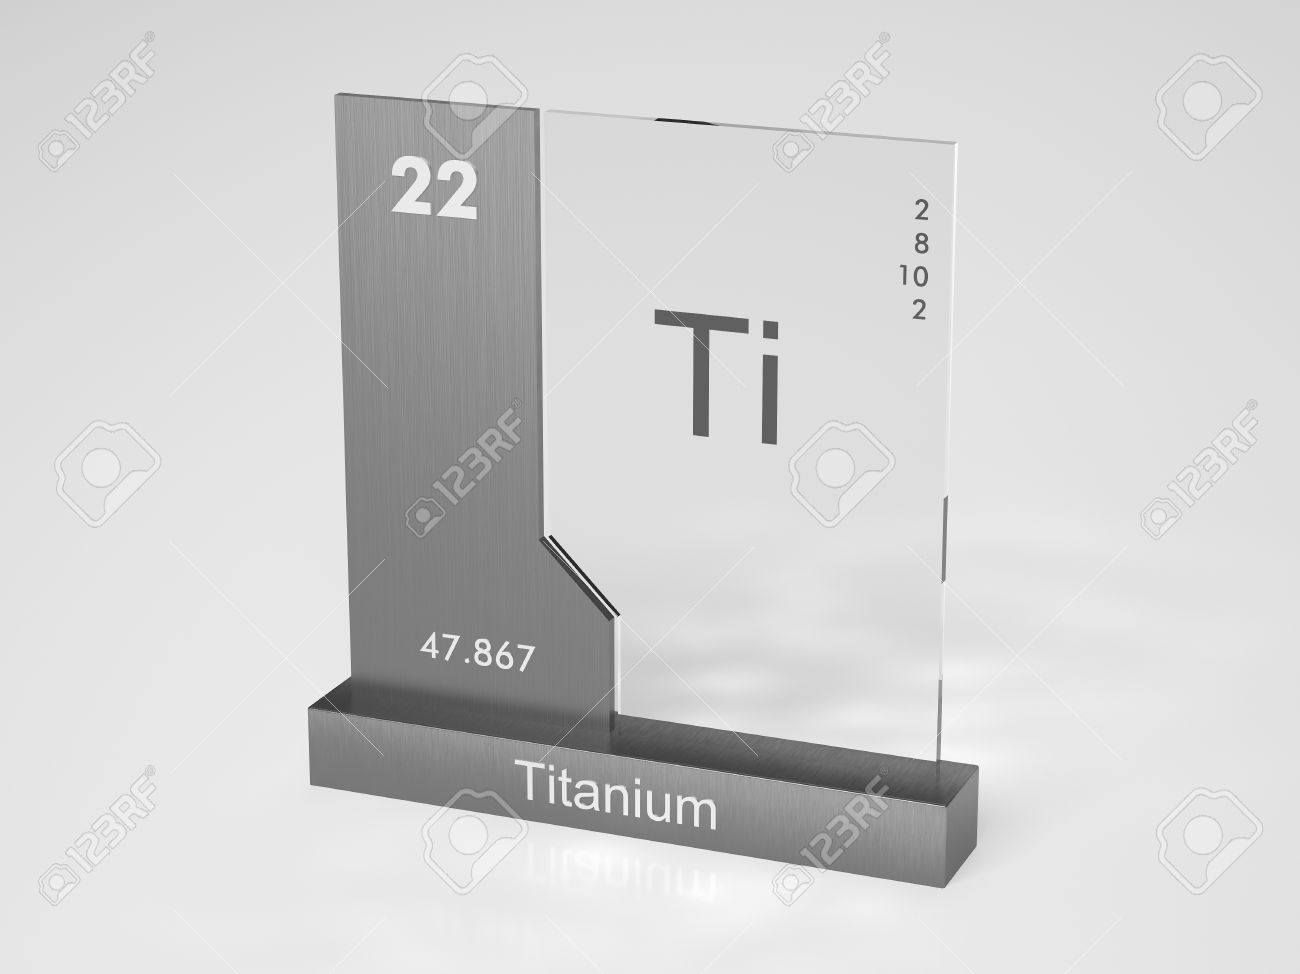 Titanium Symbol Ti Stock Photo Picture And Royalty Free Image